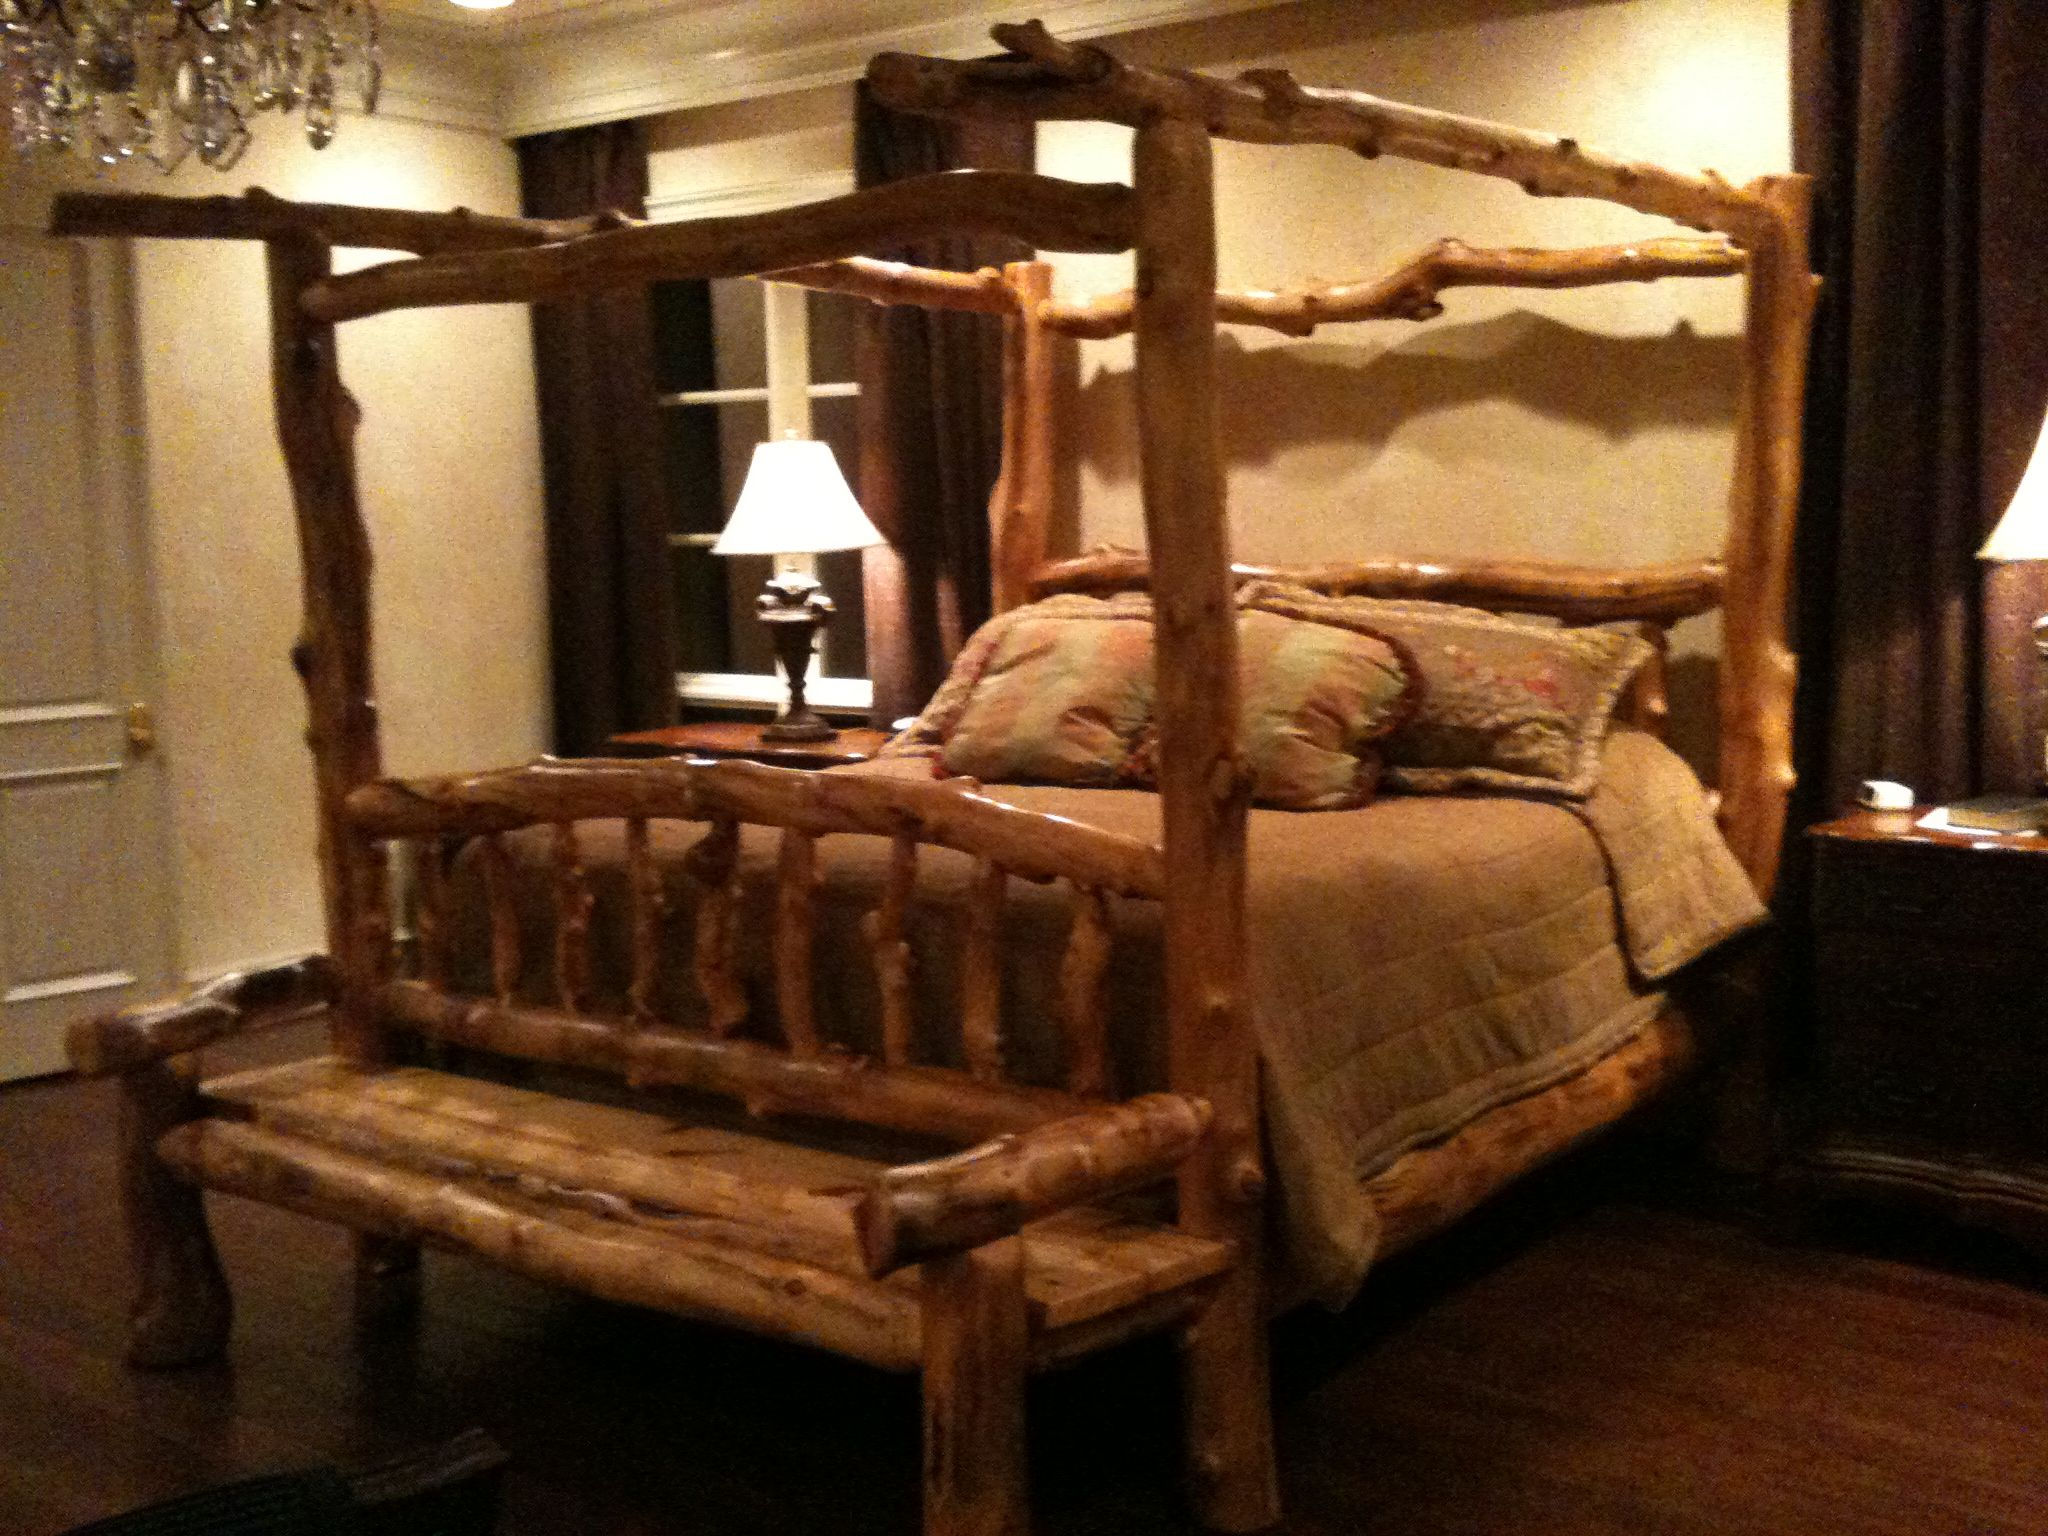 Awesome King Log Bed 1700 00 Has Attached Bench From Colorado Very Heavy Iconsignfurniture Gmail Com Bed Home